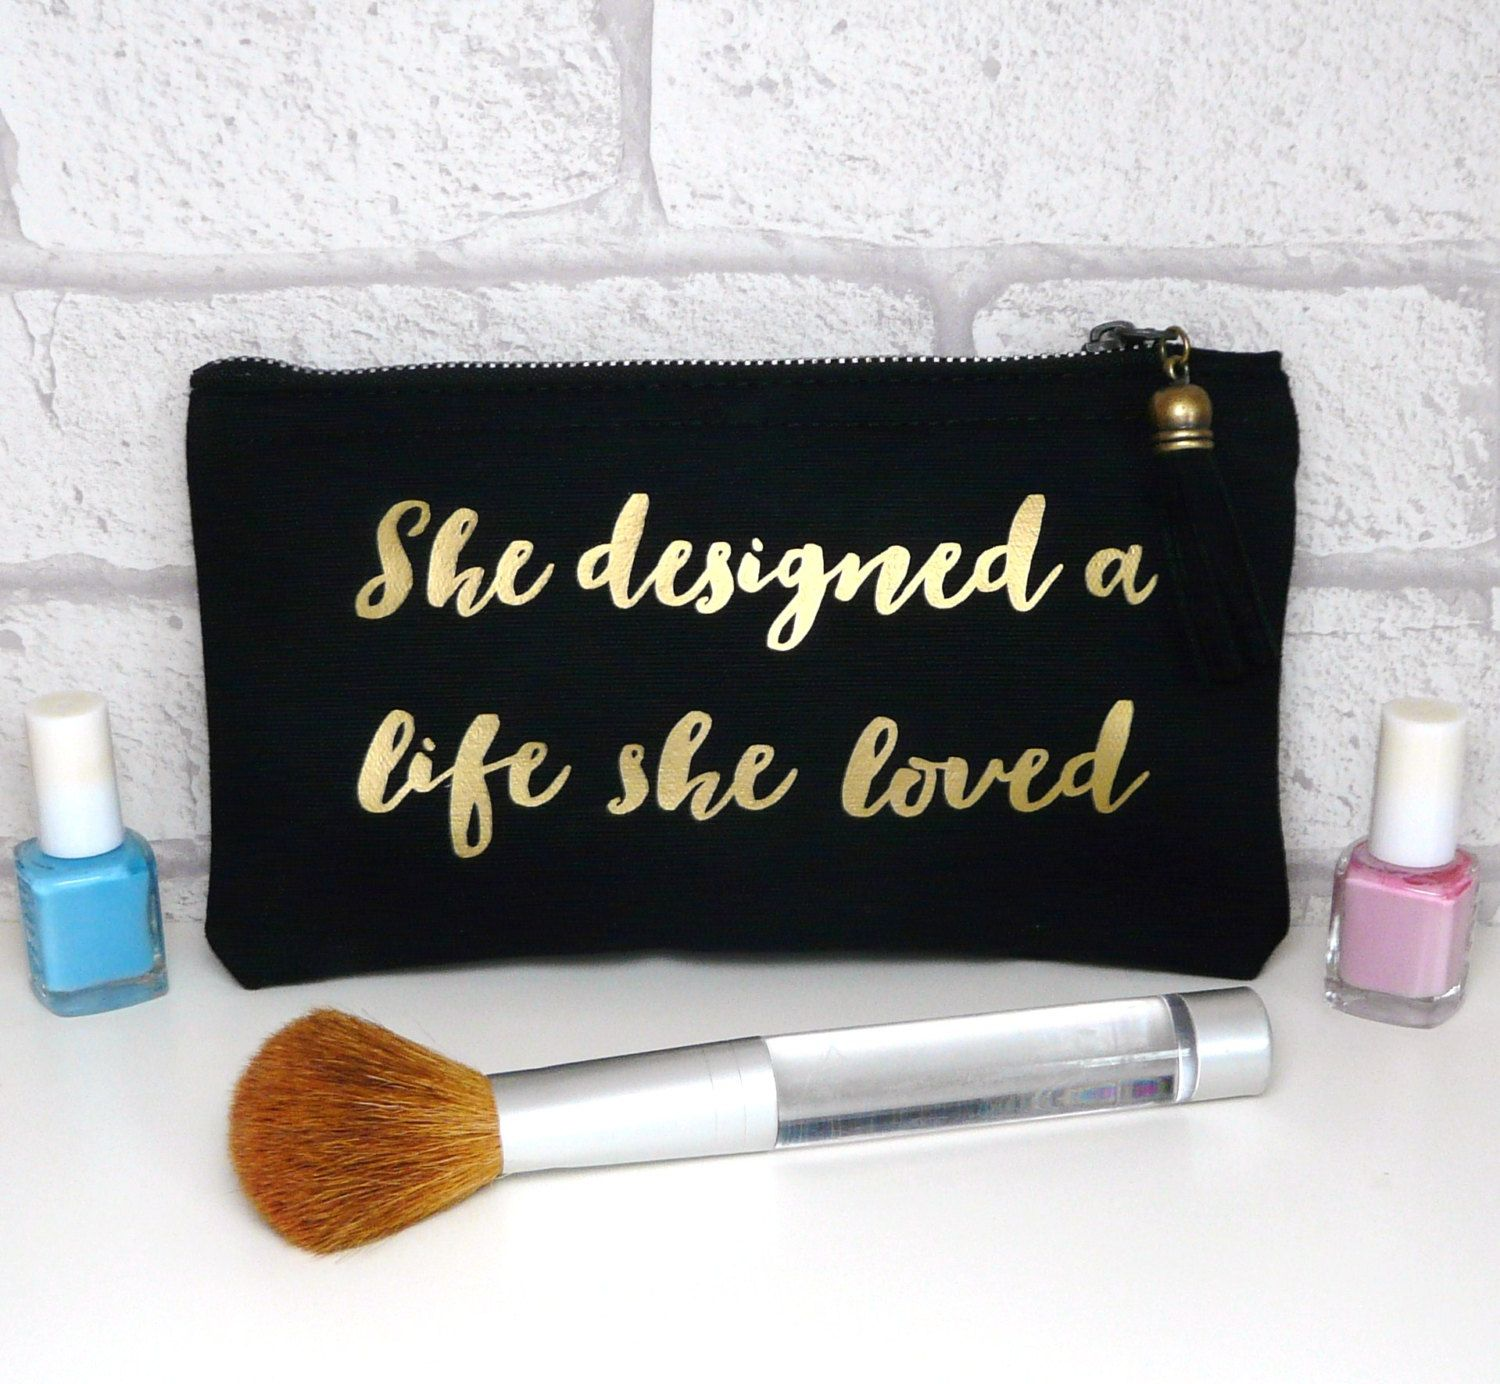 She designed a life she loved Gold / Black Font MakeUp